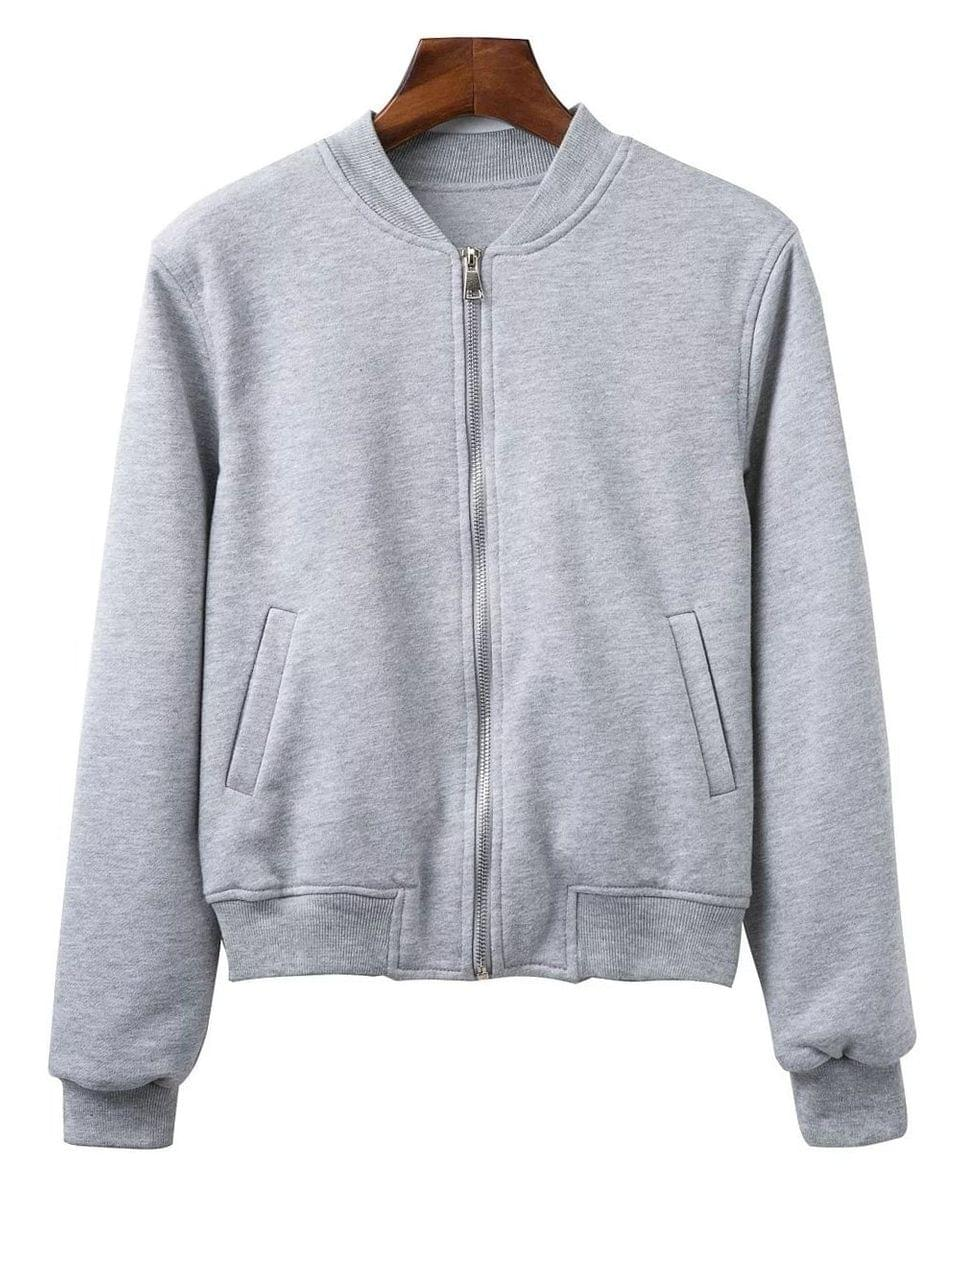 Women's Zip Up Fitting Stand Neck Long Sleeve Jacket - Gray S